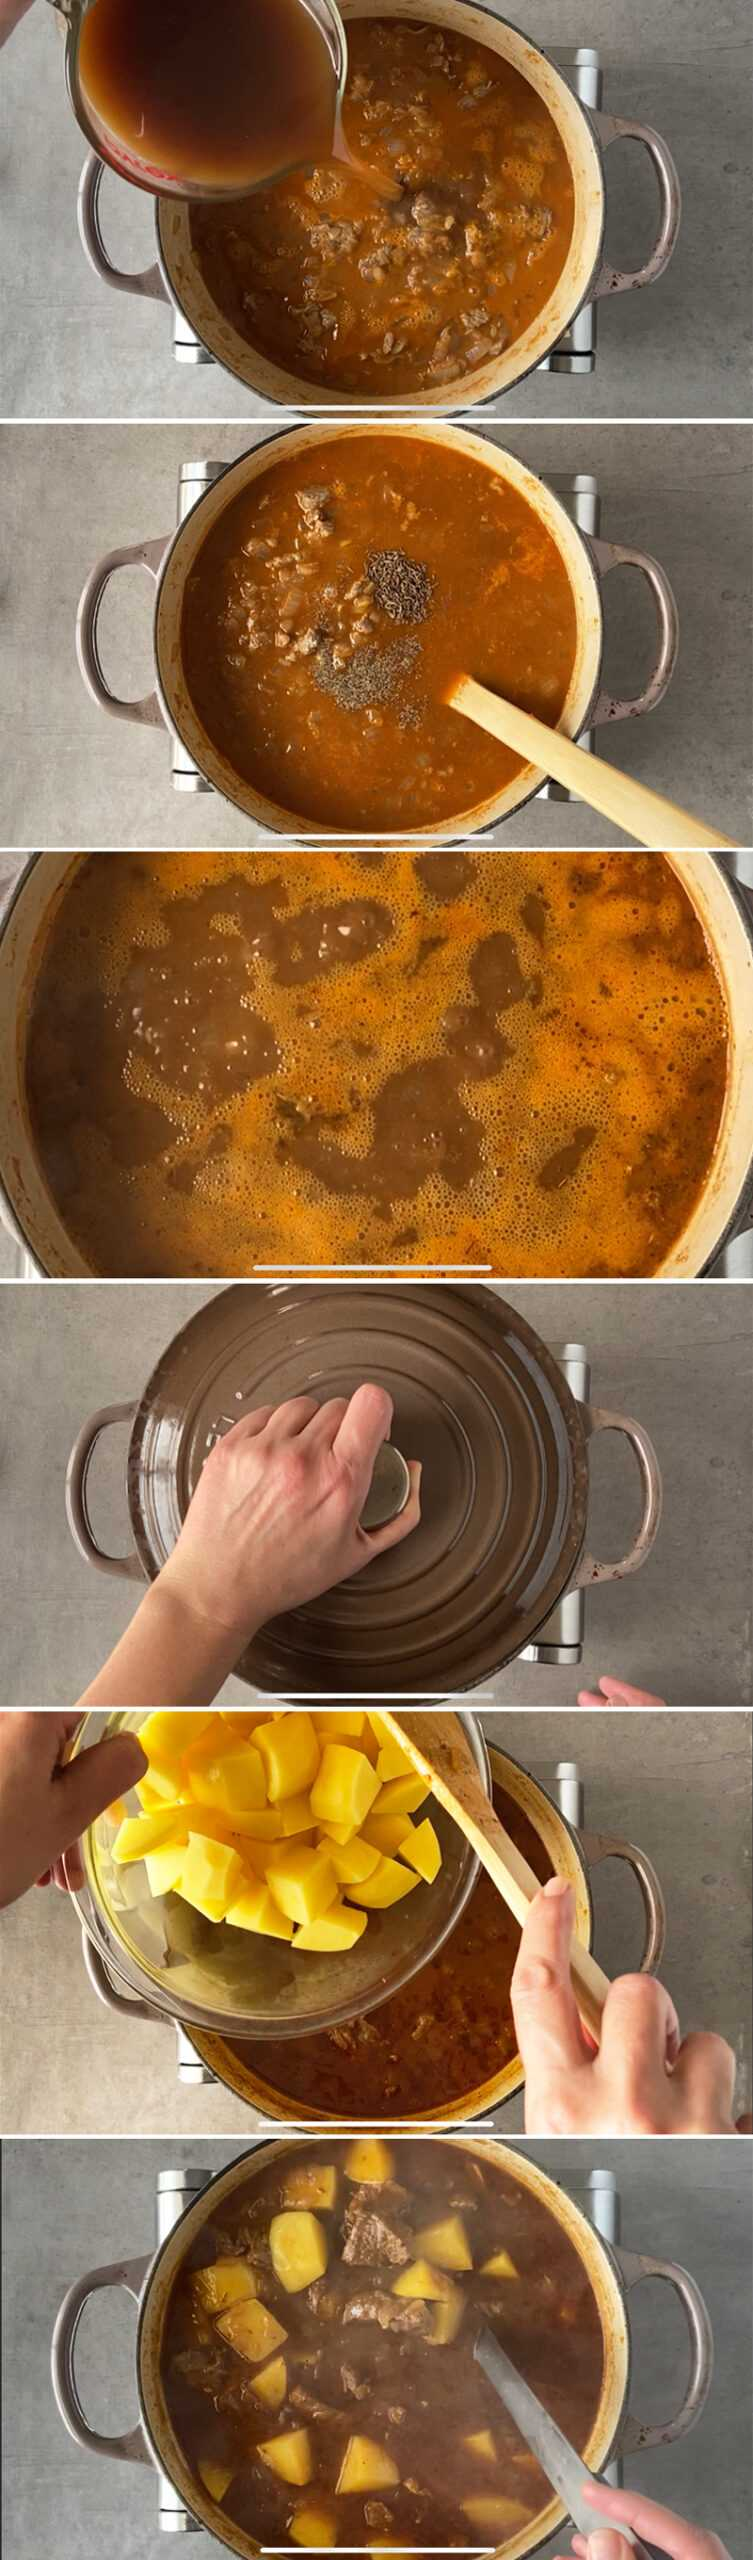 How to make German beef goulash with dark beer - step by step images collage. Part 2.